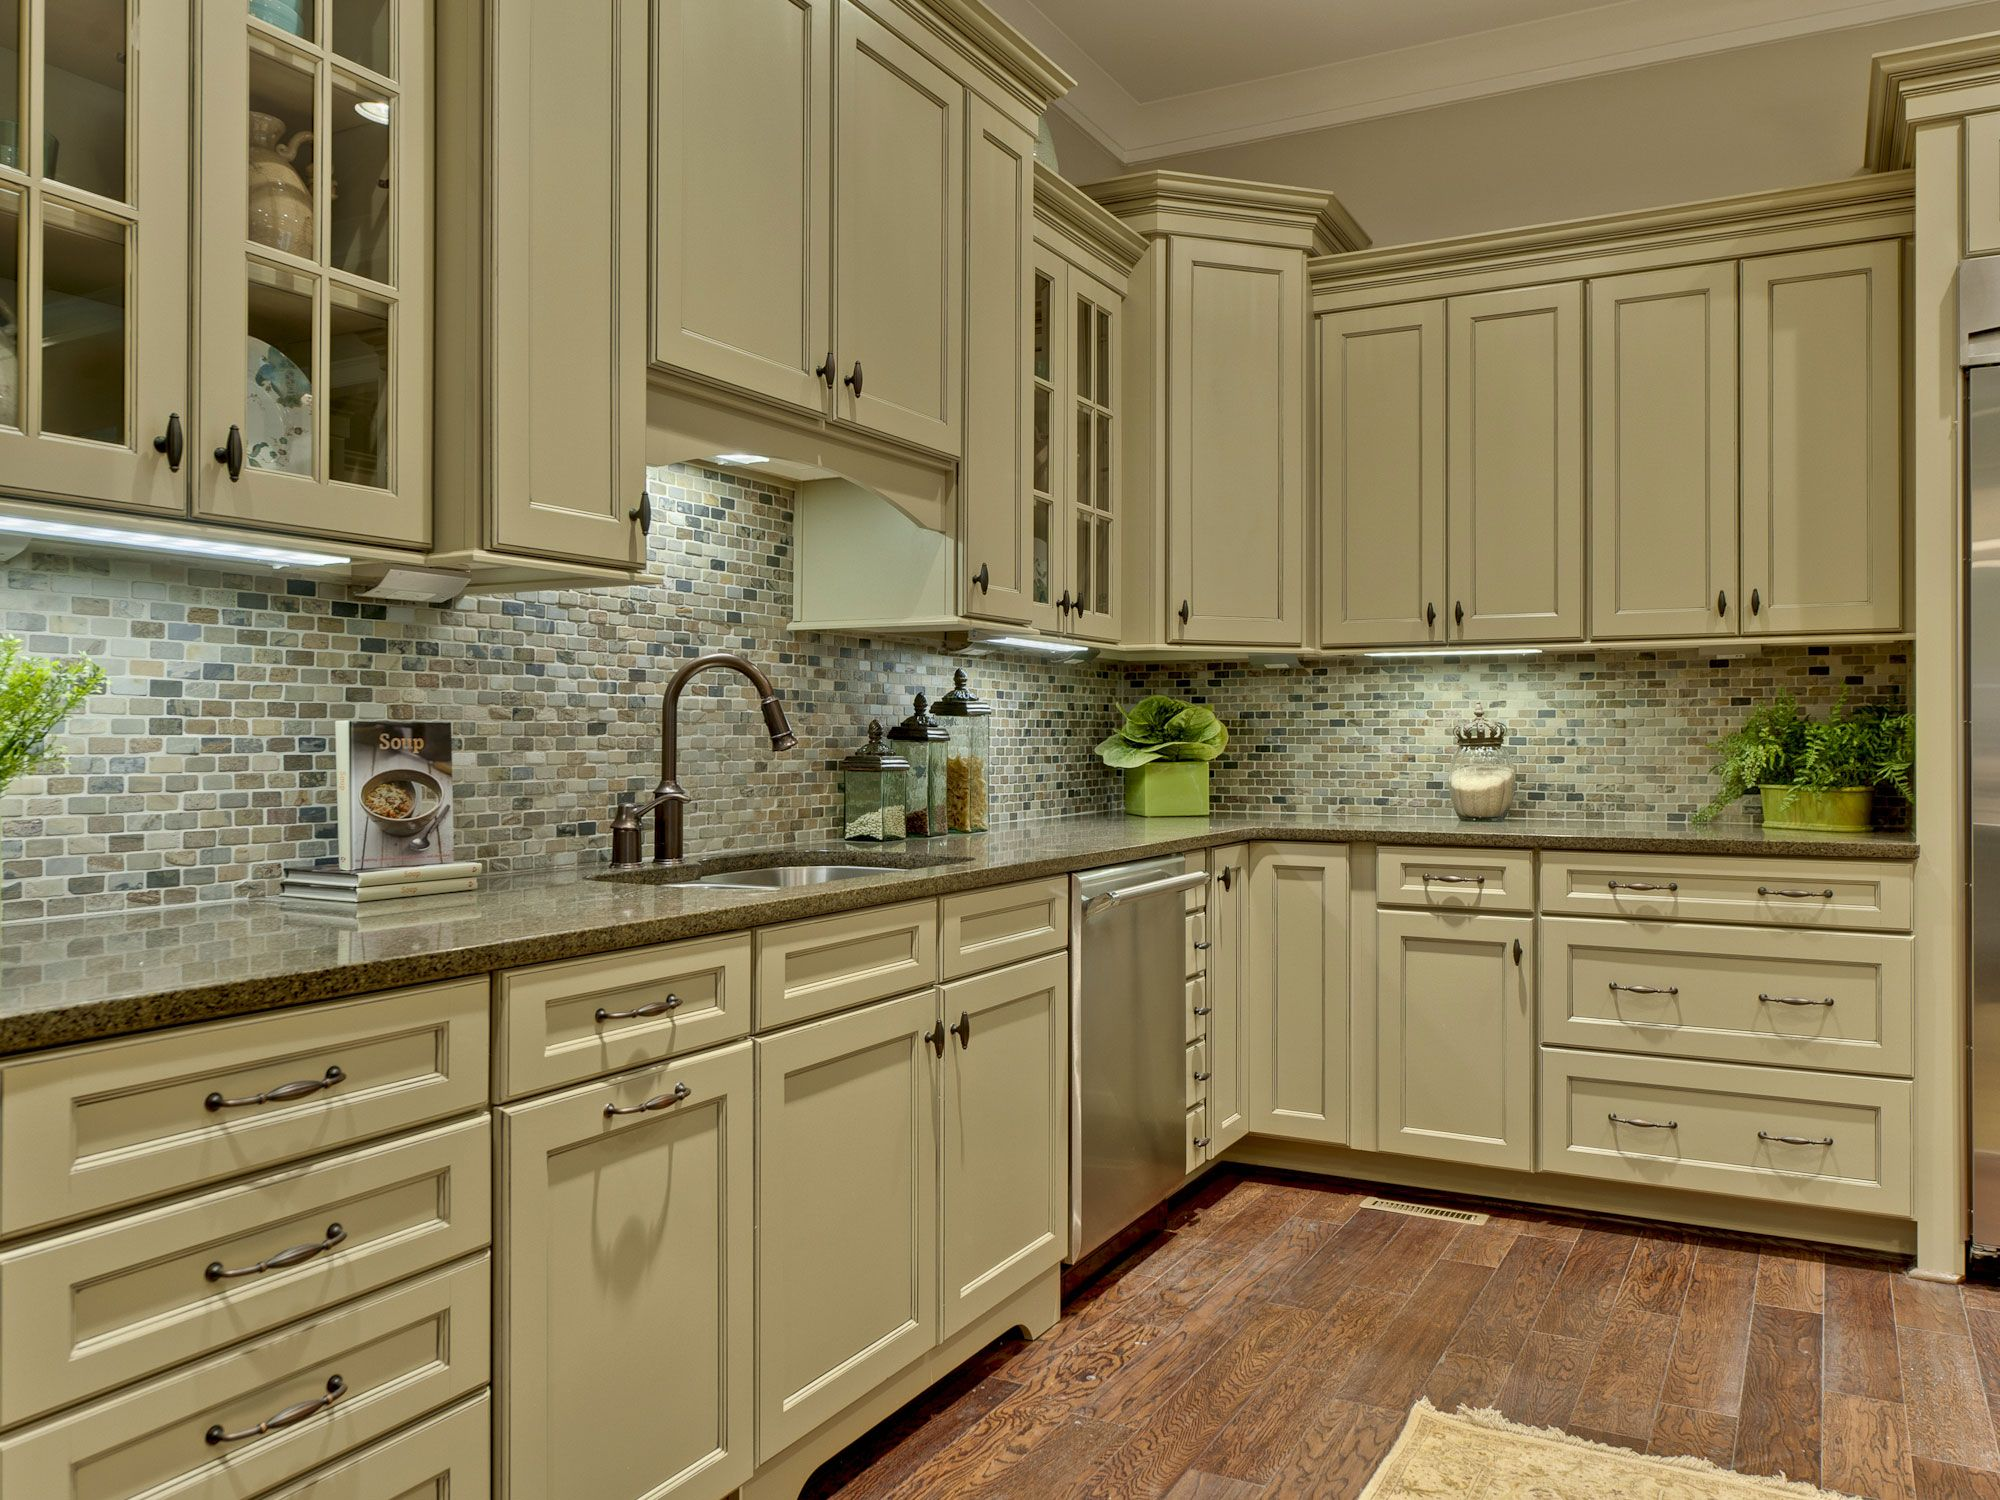 Amazing refinished green kitchen cabinets to white painted Kitchen cabinets light green